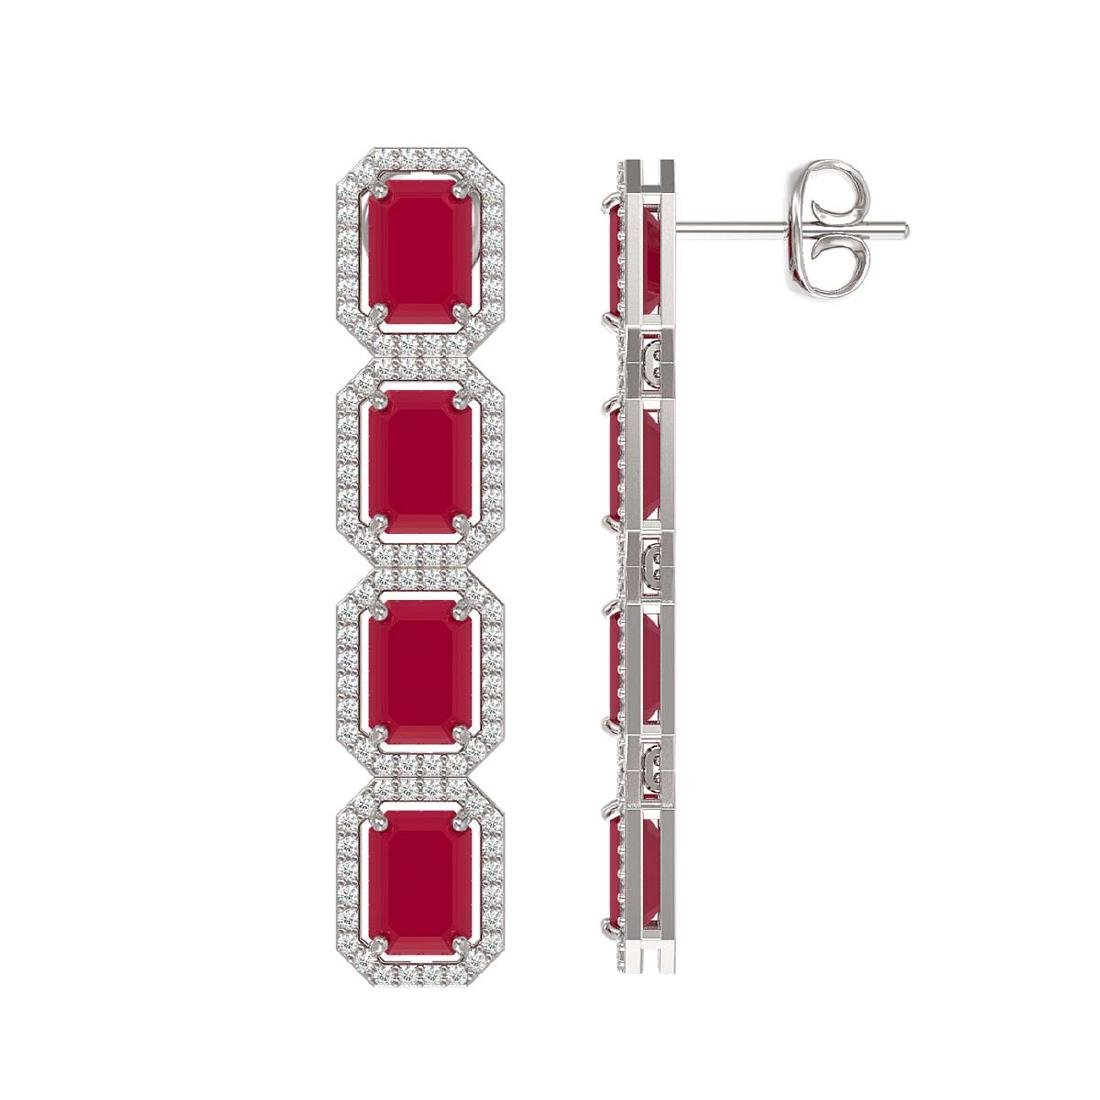 12.33 CTW Ruby & Diamond Halo Earrings 10K White Gold - 2